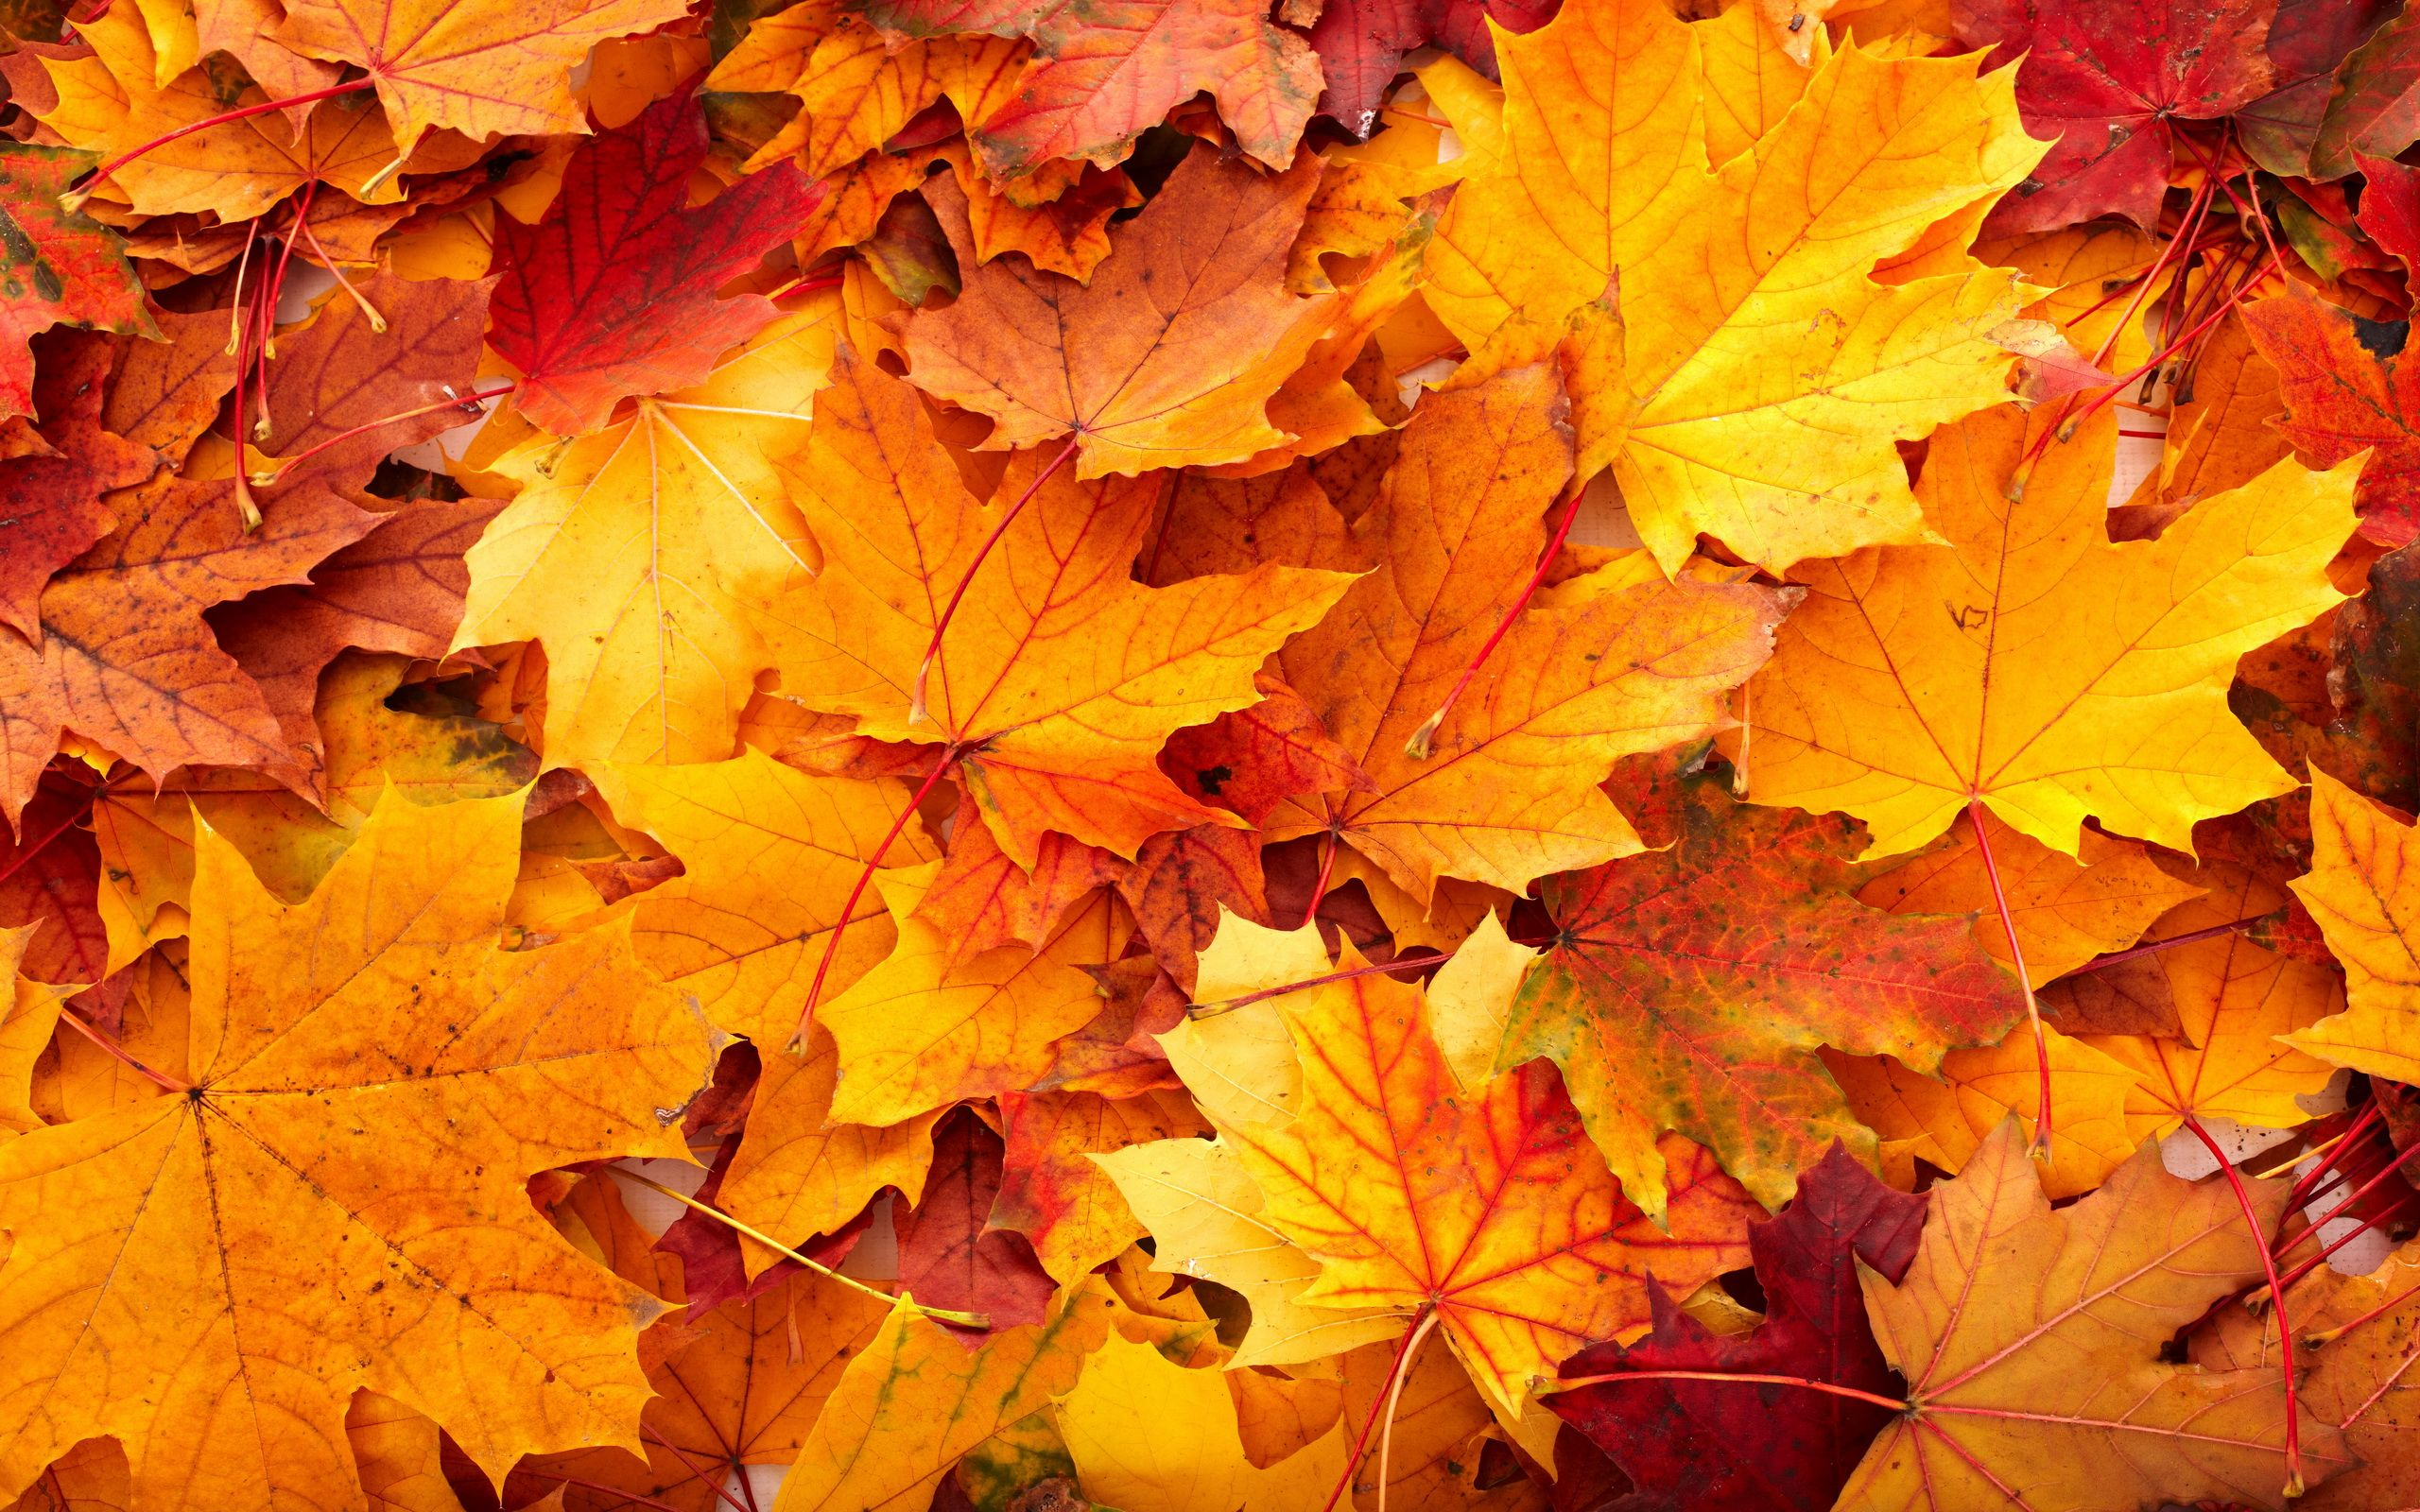 Android Wallpaper Fall Colors Fall Leaves Background Autumn Leaves Wallpaper Fall Wallpaper